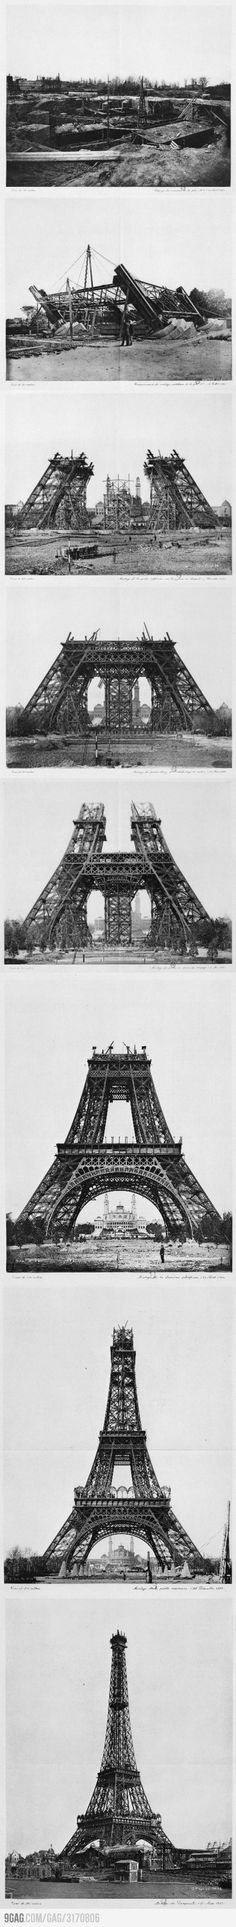 Eiffel Tower. Very special to me. one day, icon, paris, eiffel tower, arch, towers, under construction, buildings, place